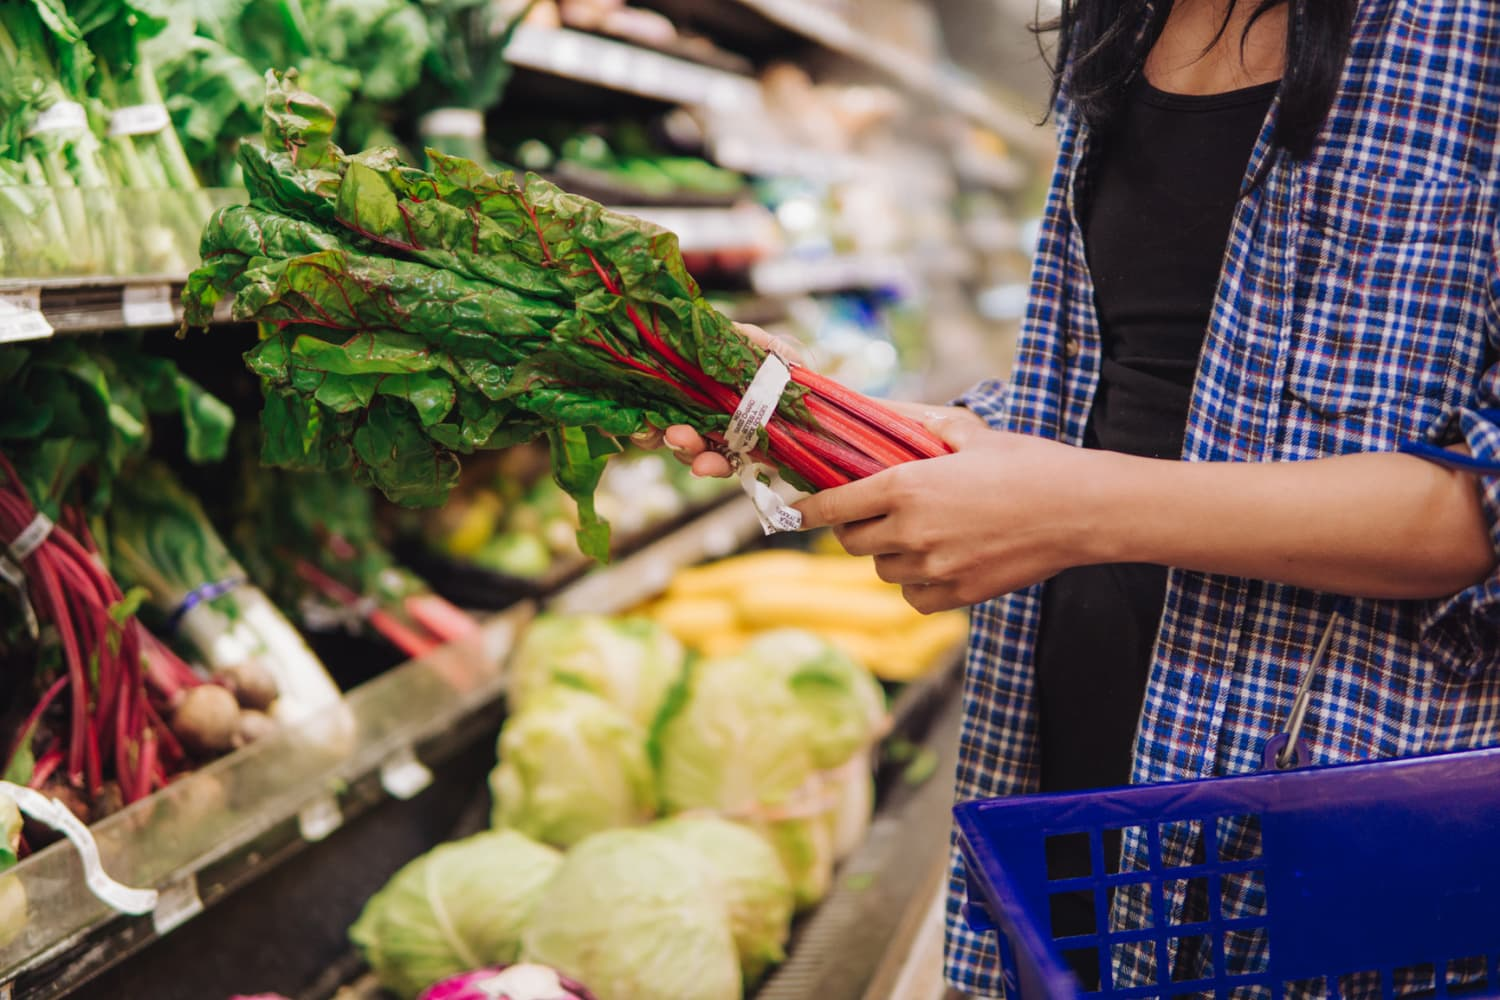 8 Ways to Save on Food Without Compromising Nutrition